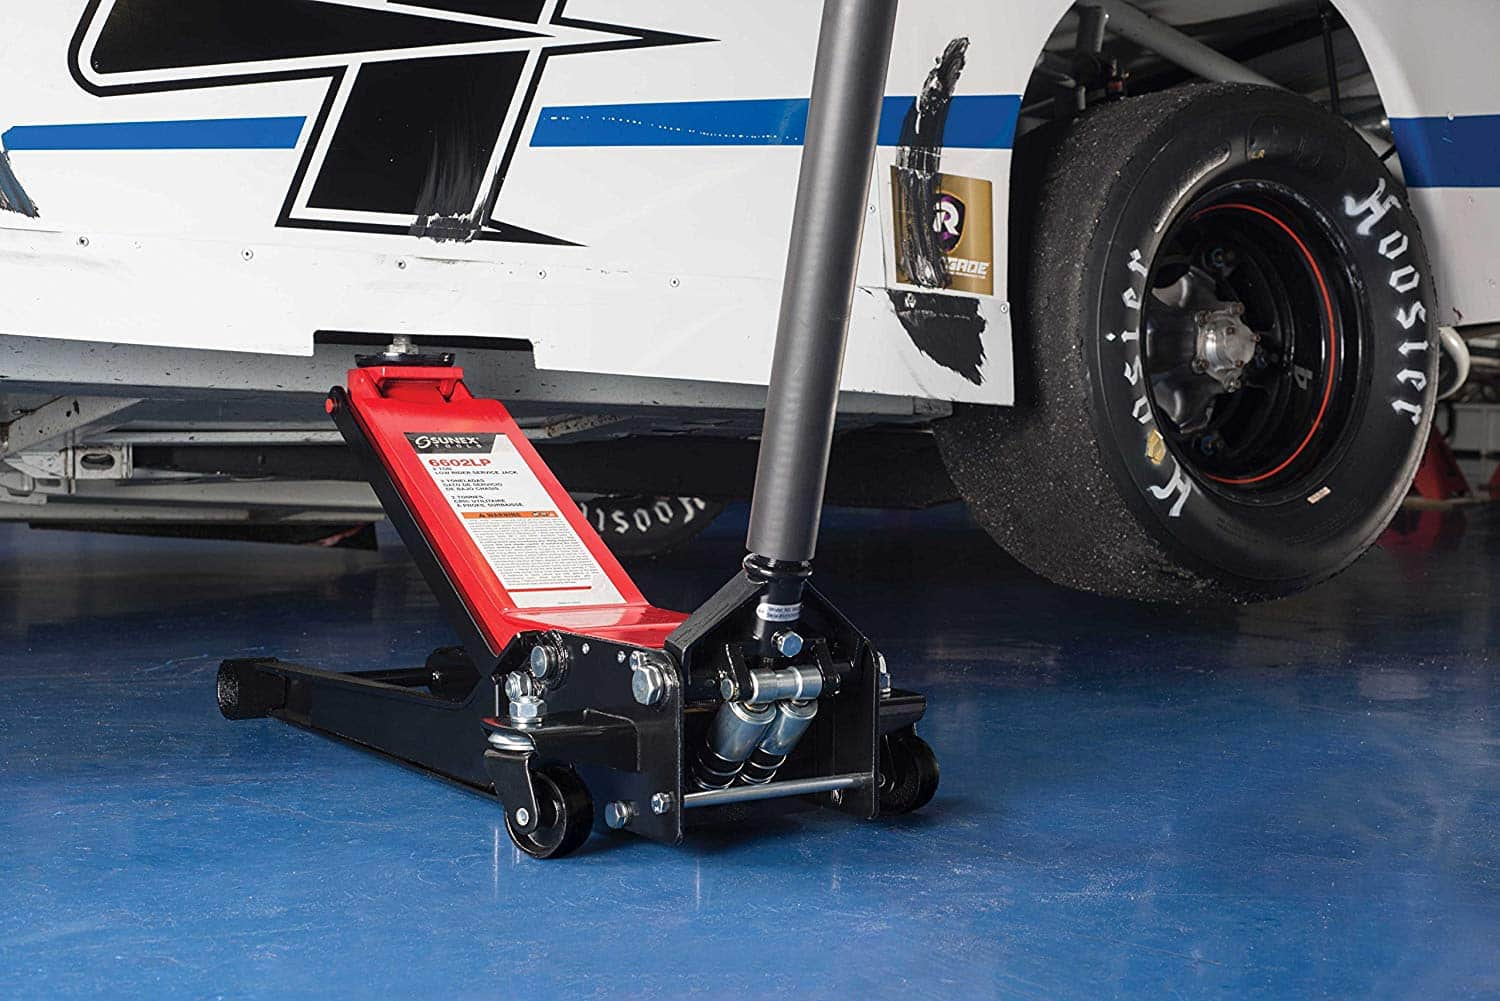 Top 10 Best Floor Jacks in 2020 Reviews | Best Floor Jack for Trucks